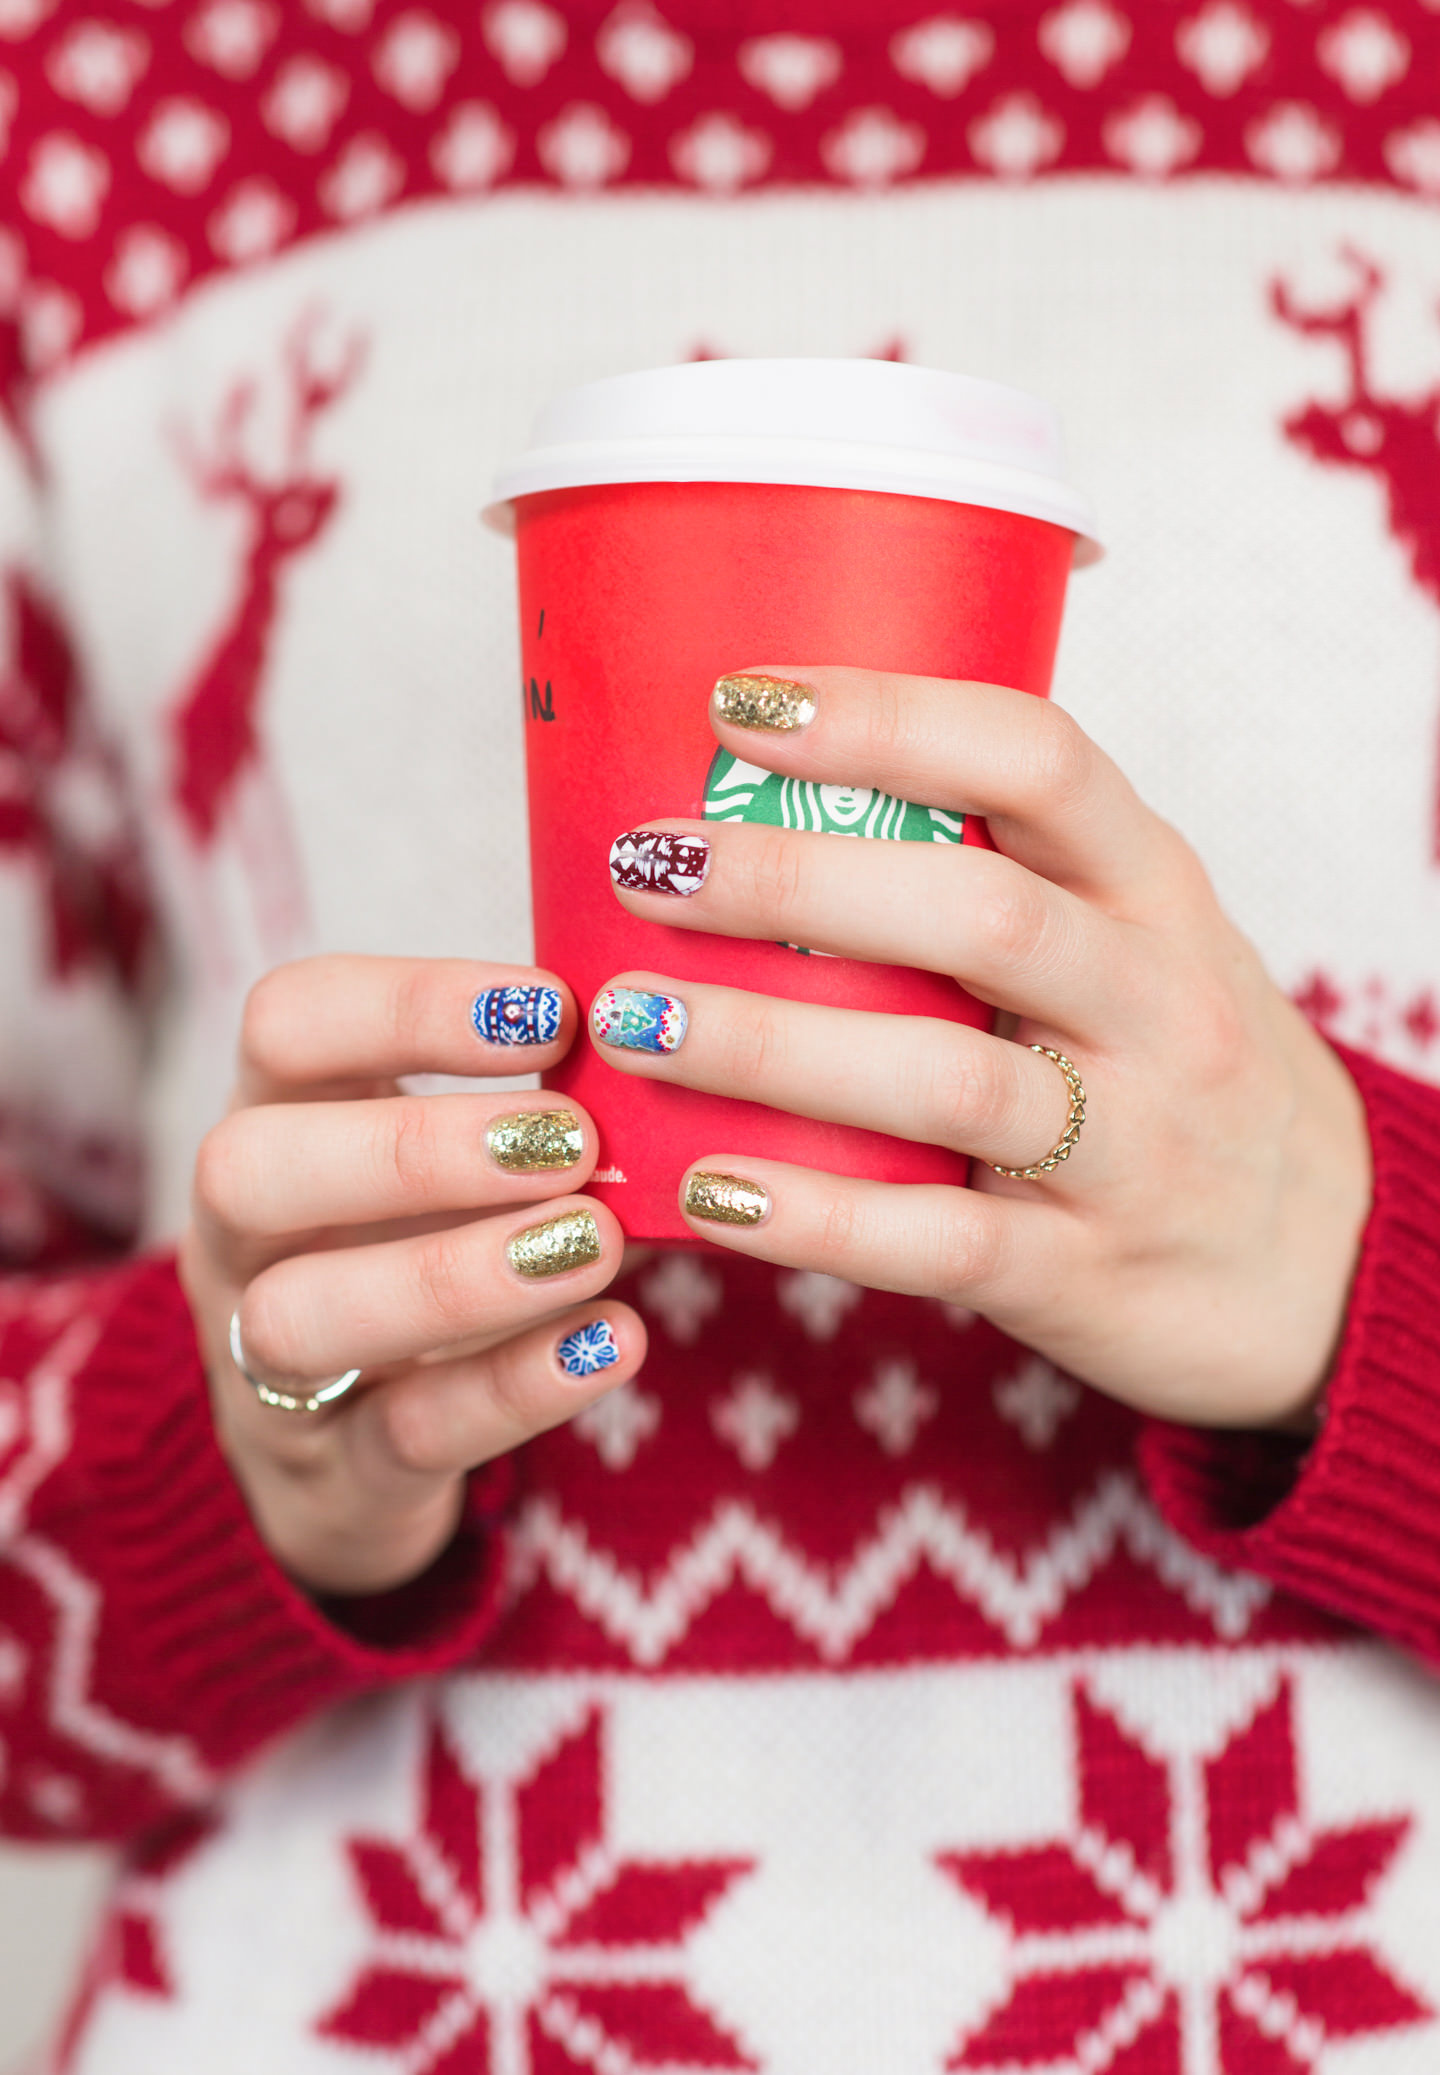 Blog-Mode-And-The-City-Lifestyle-Cinq-Petites-Choses-159-nail-art-christmas-sweaters2